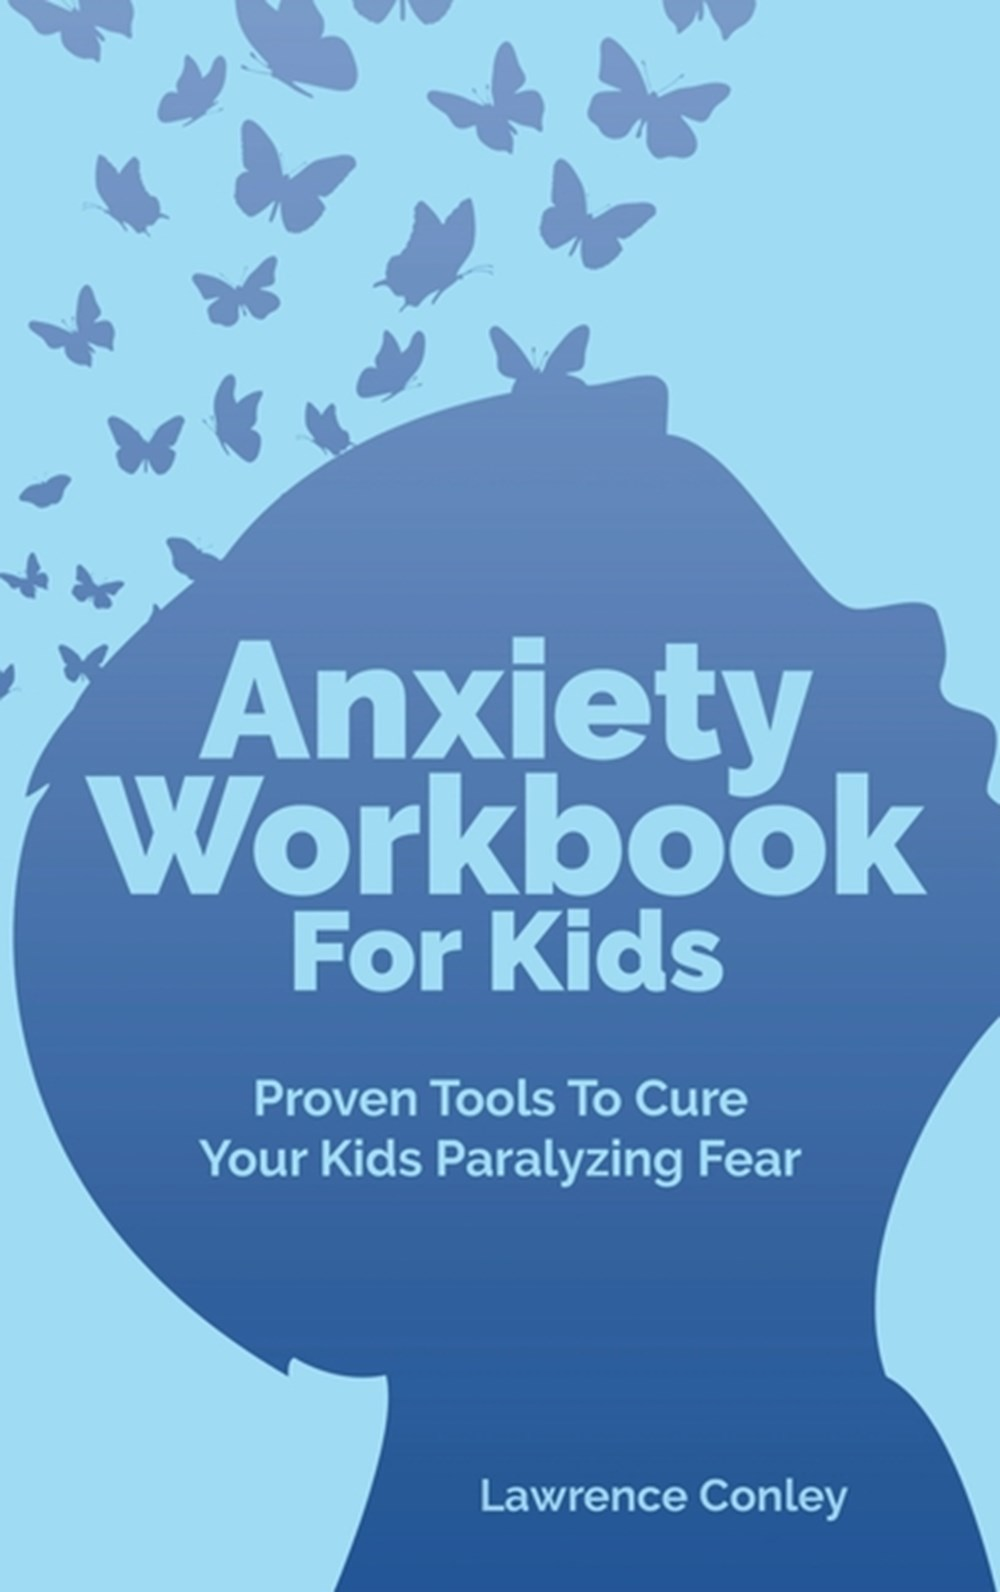 Anxiety Workbook For Kids Proven Tools To Cure Your Kids Paralyzing Fear